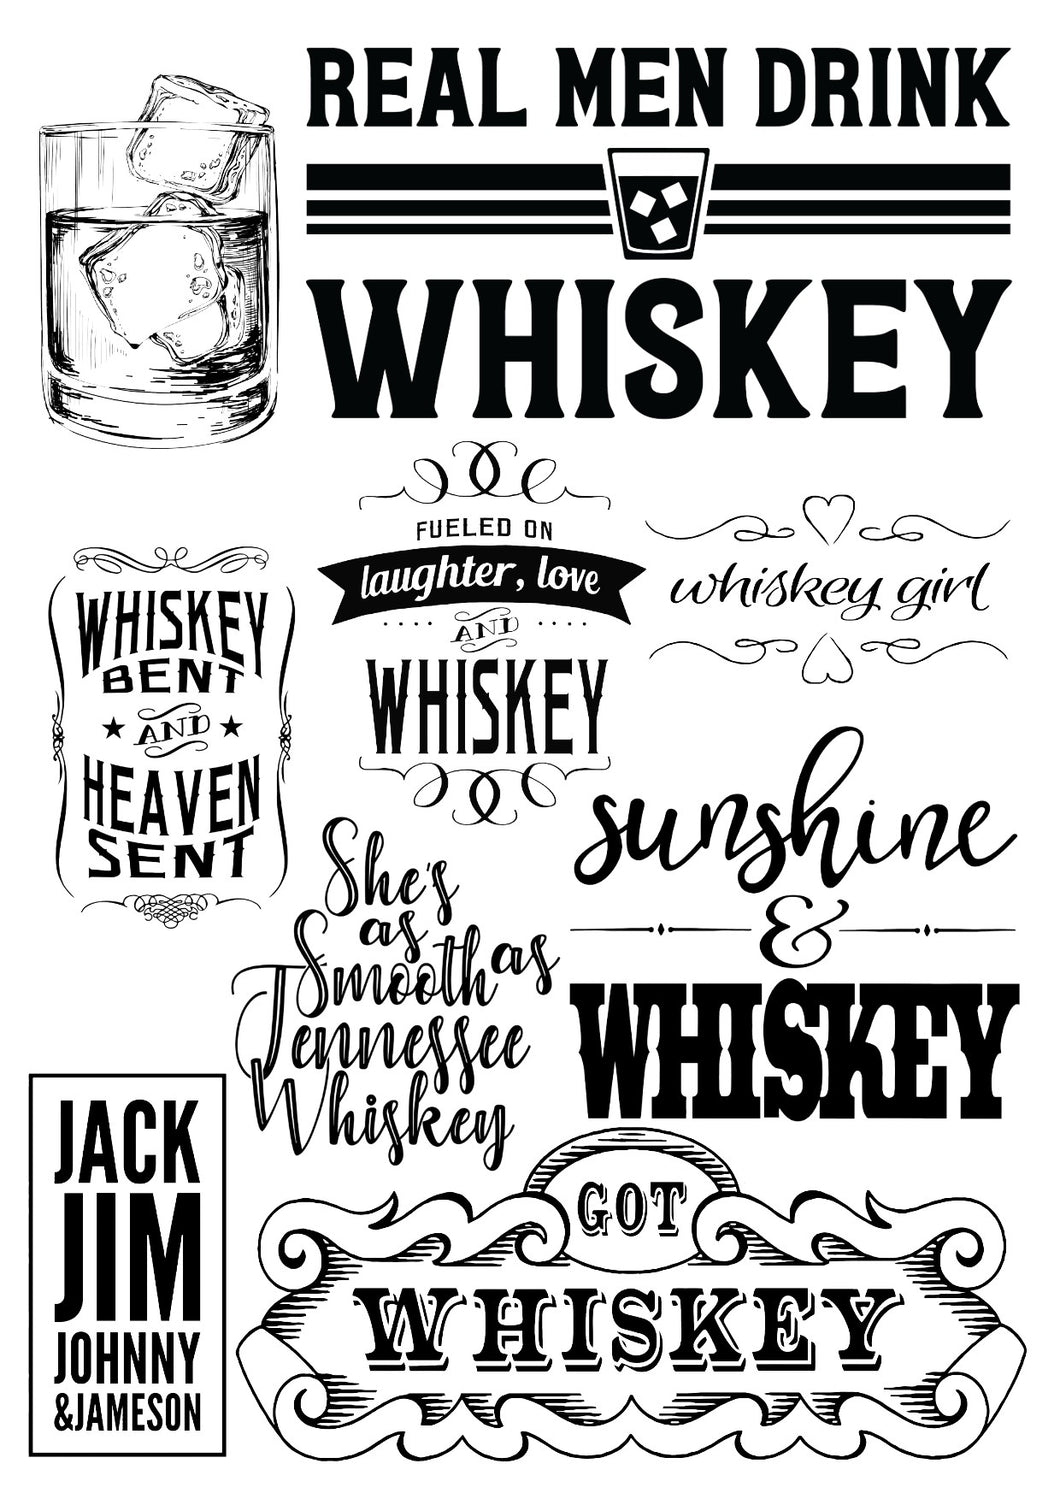 Real Men Drink Whiskey